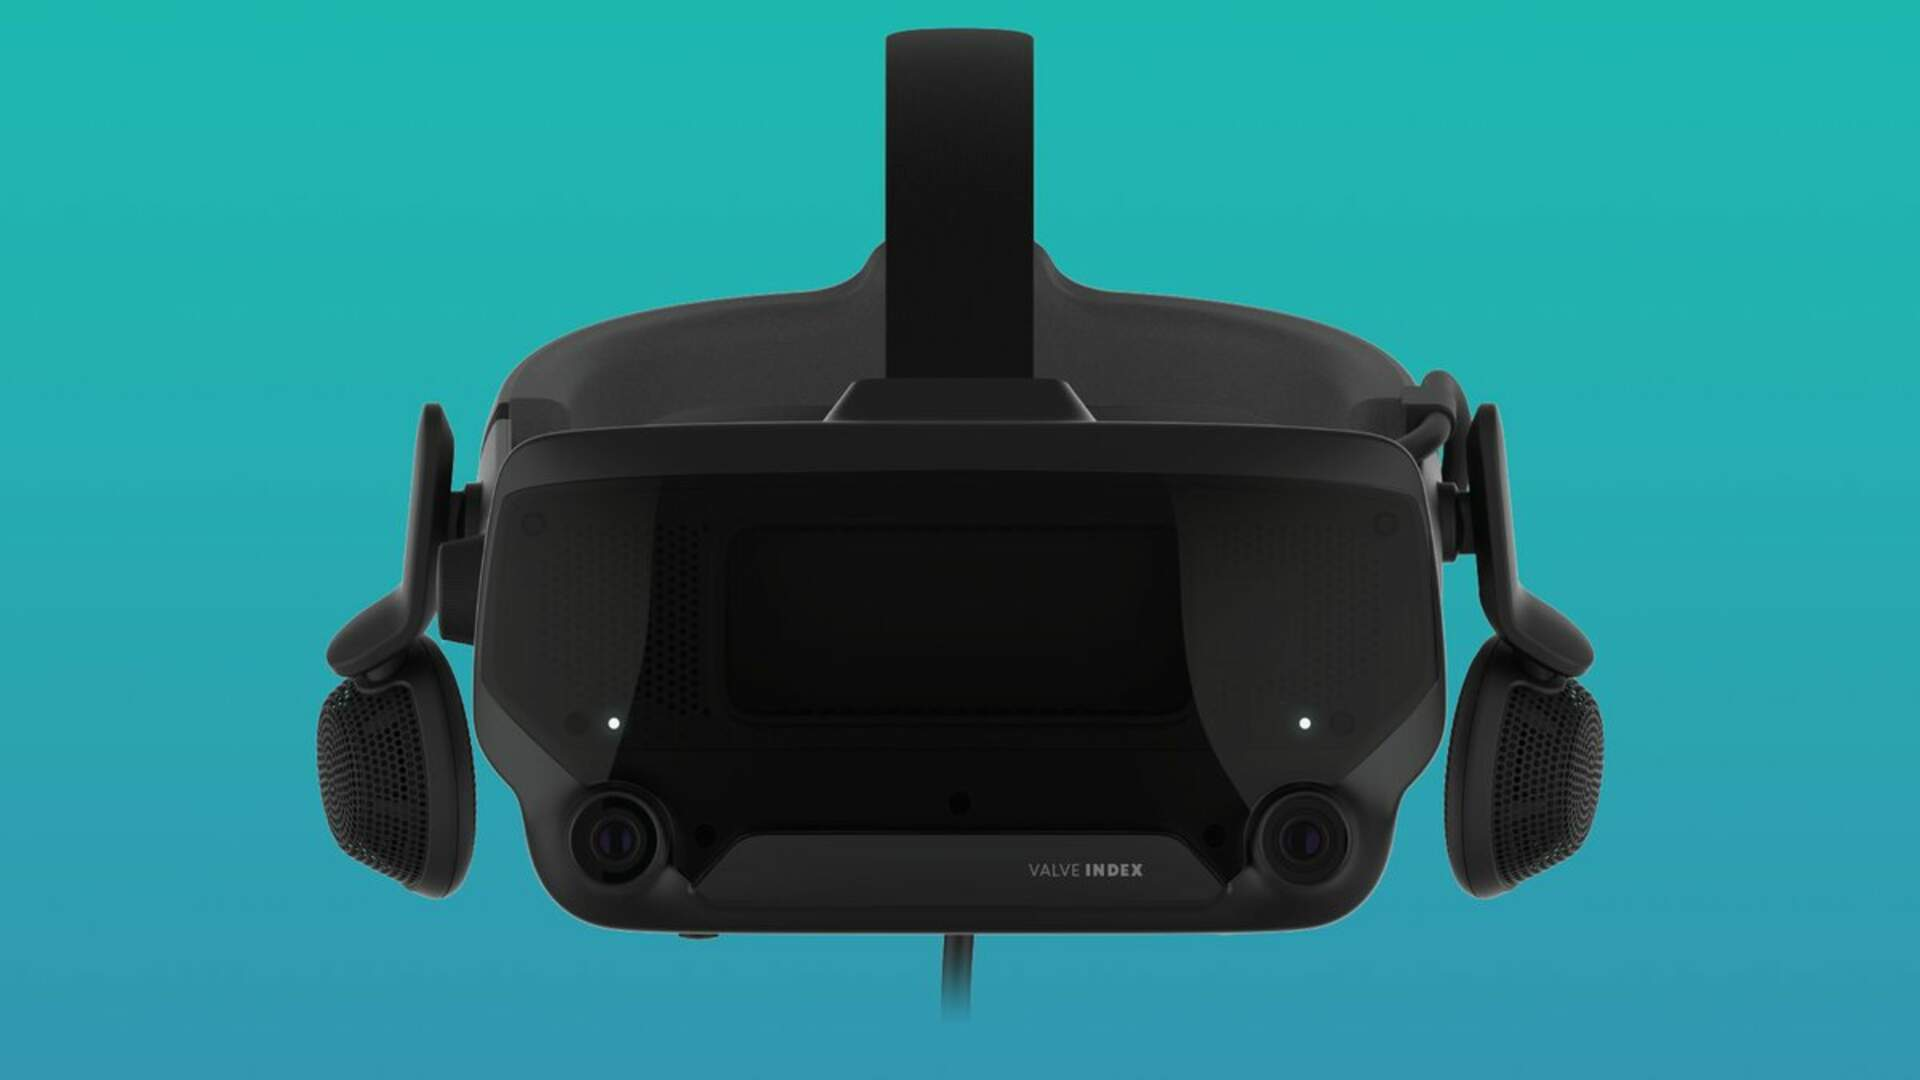 Valve Index Steam Page Leaks Specs, Release Date, and More